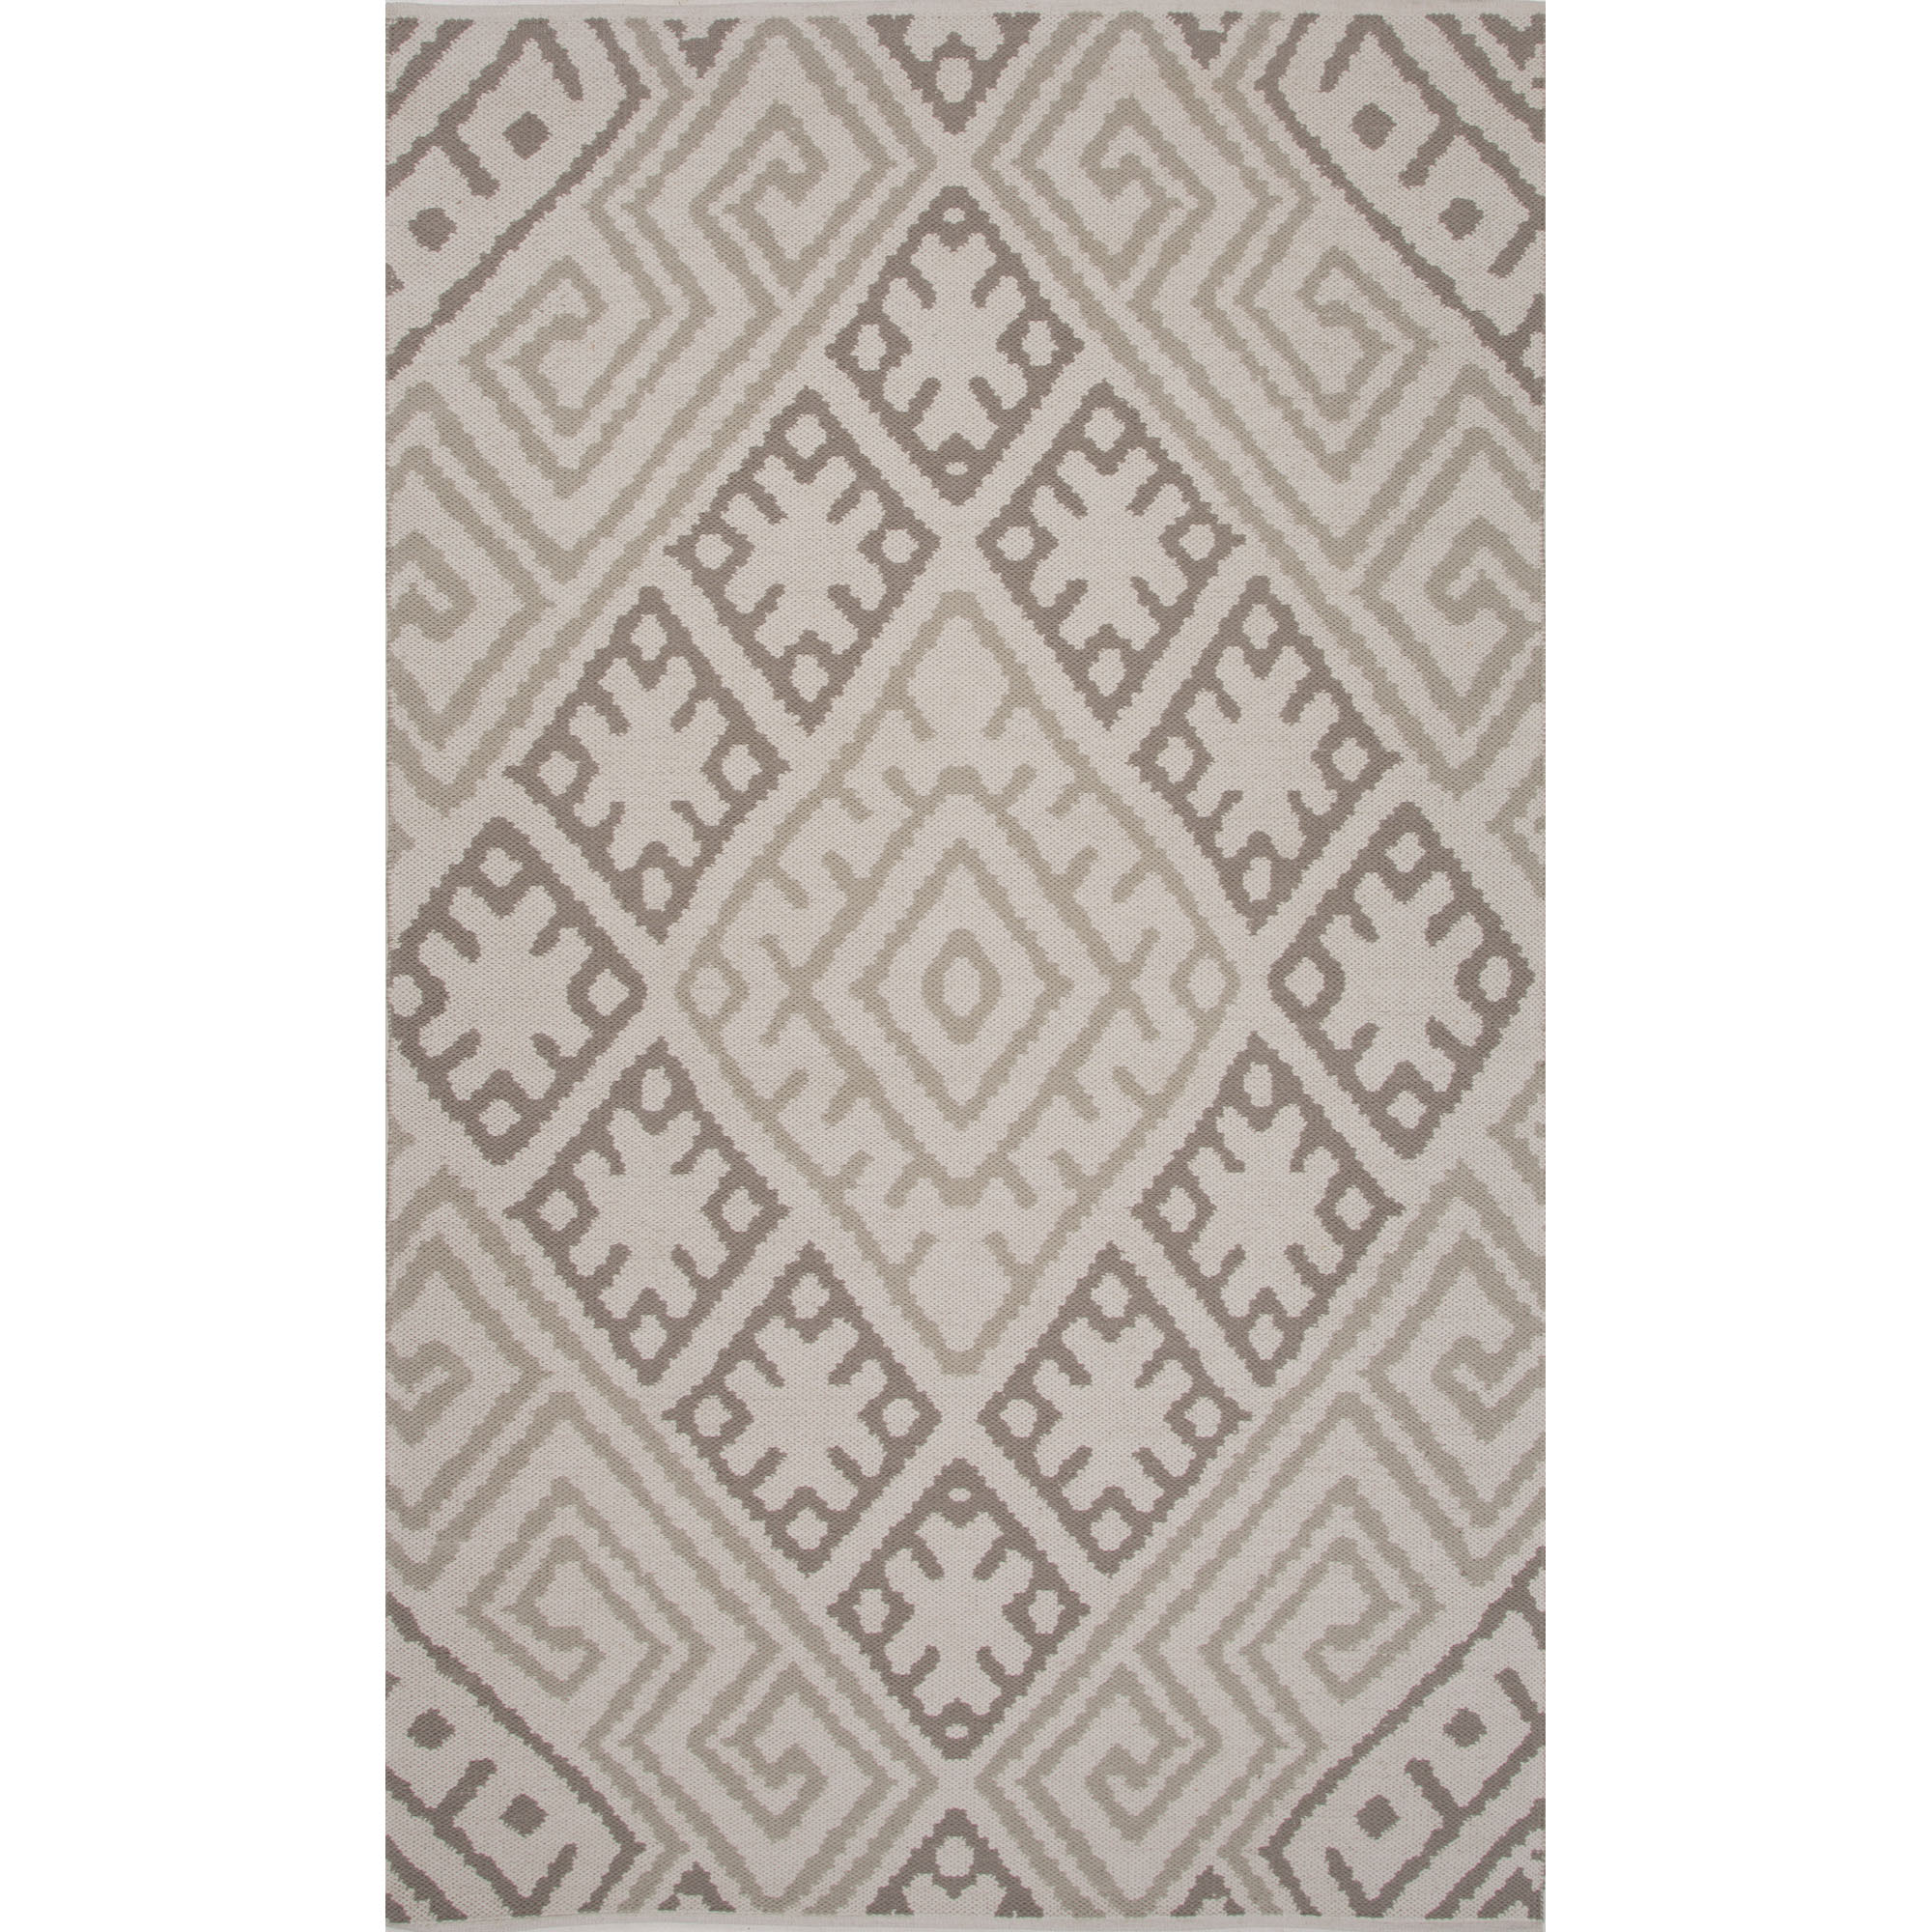 JAIPUR Rugs Traditions Modern Cotton Flat Weave 8 x 11 Rug - Item Number: RUG122237